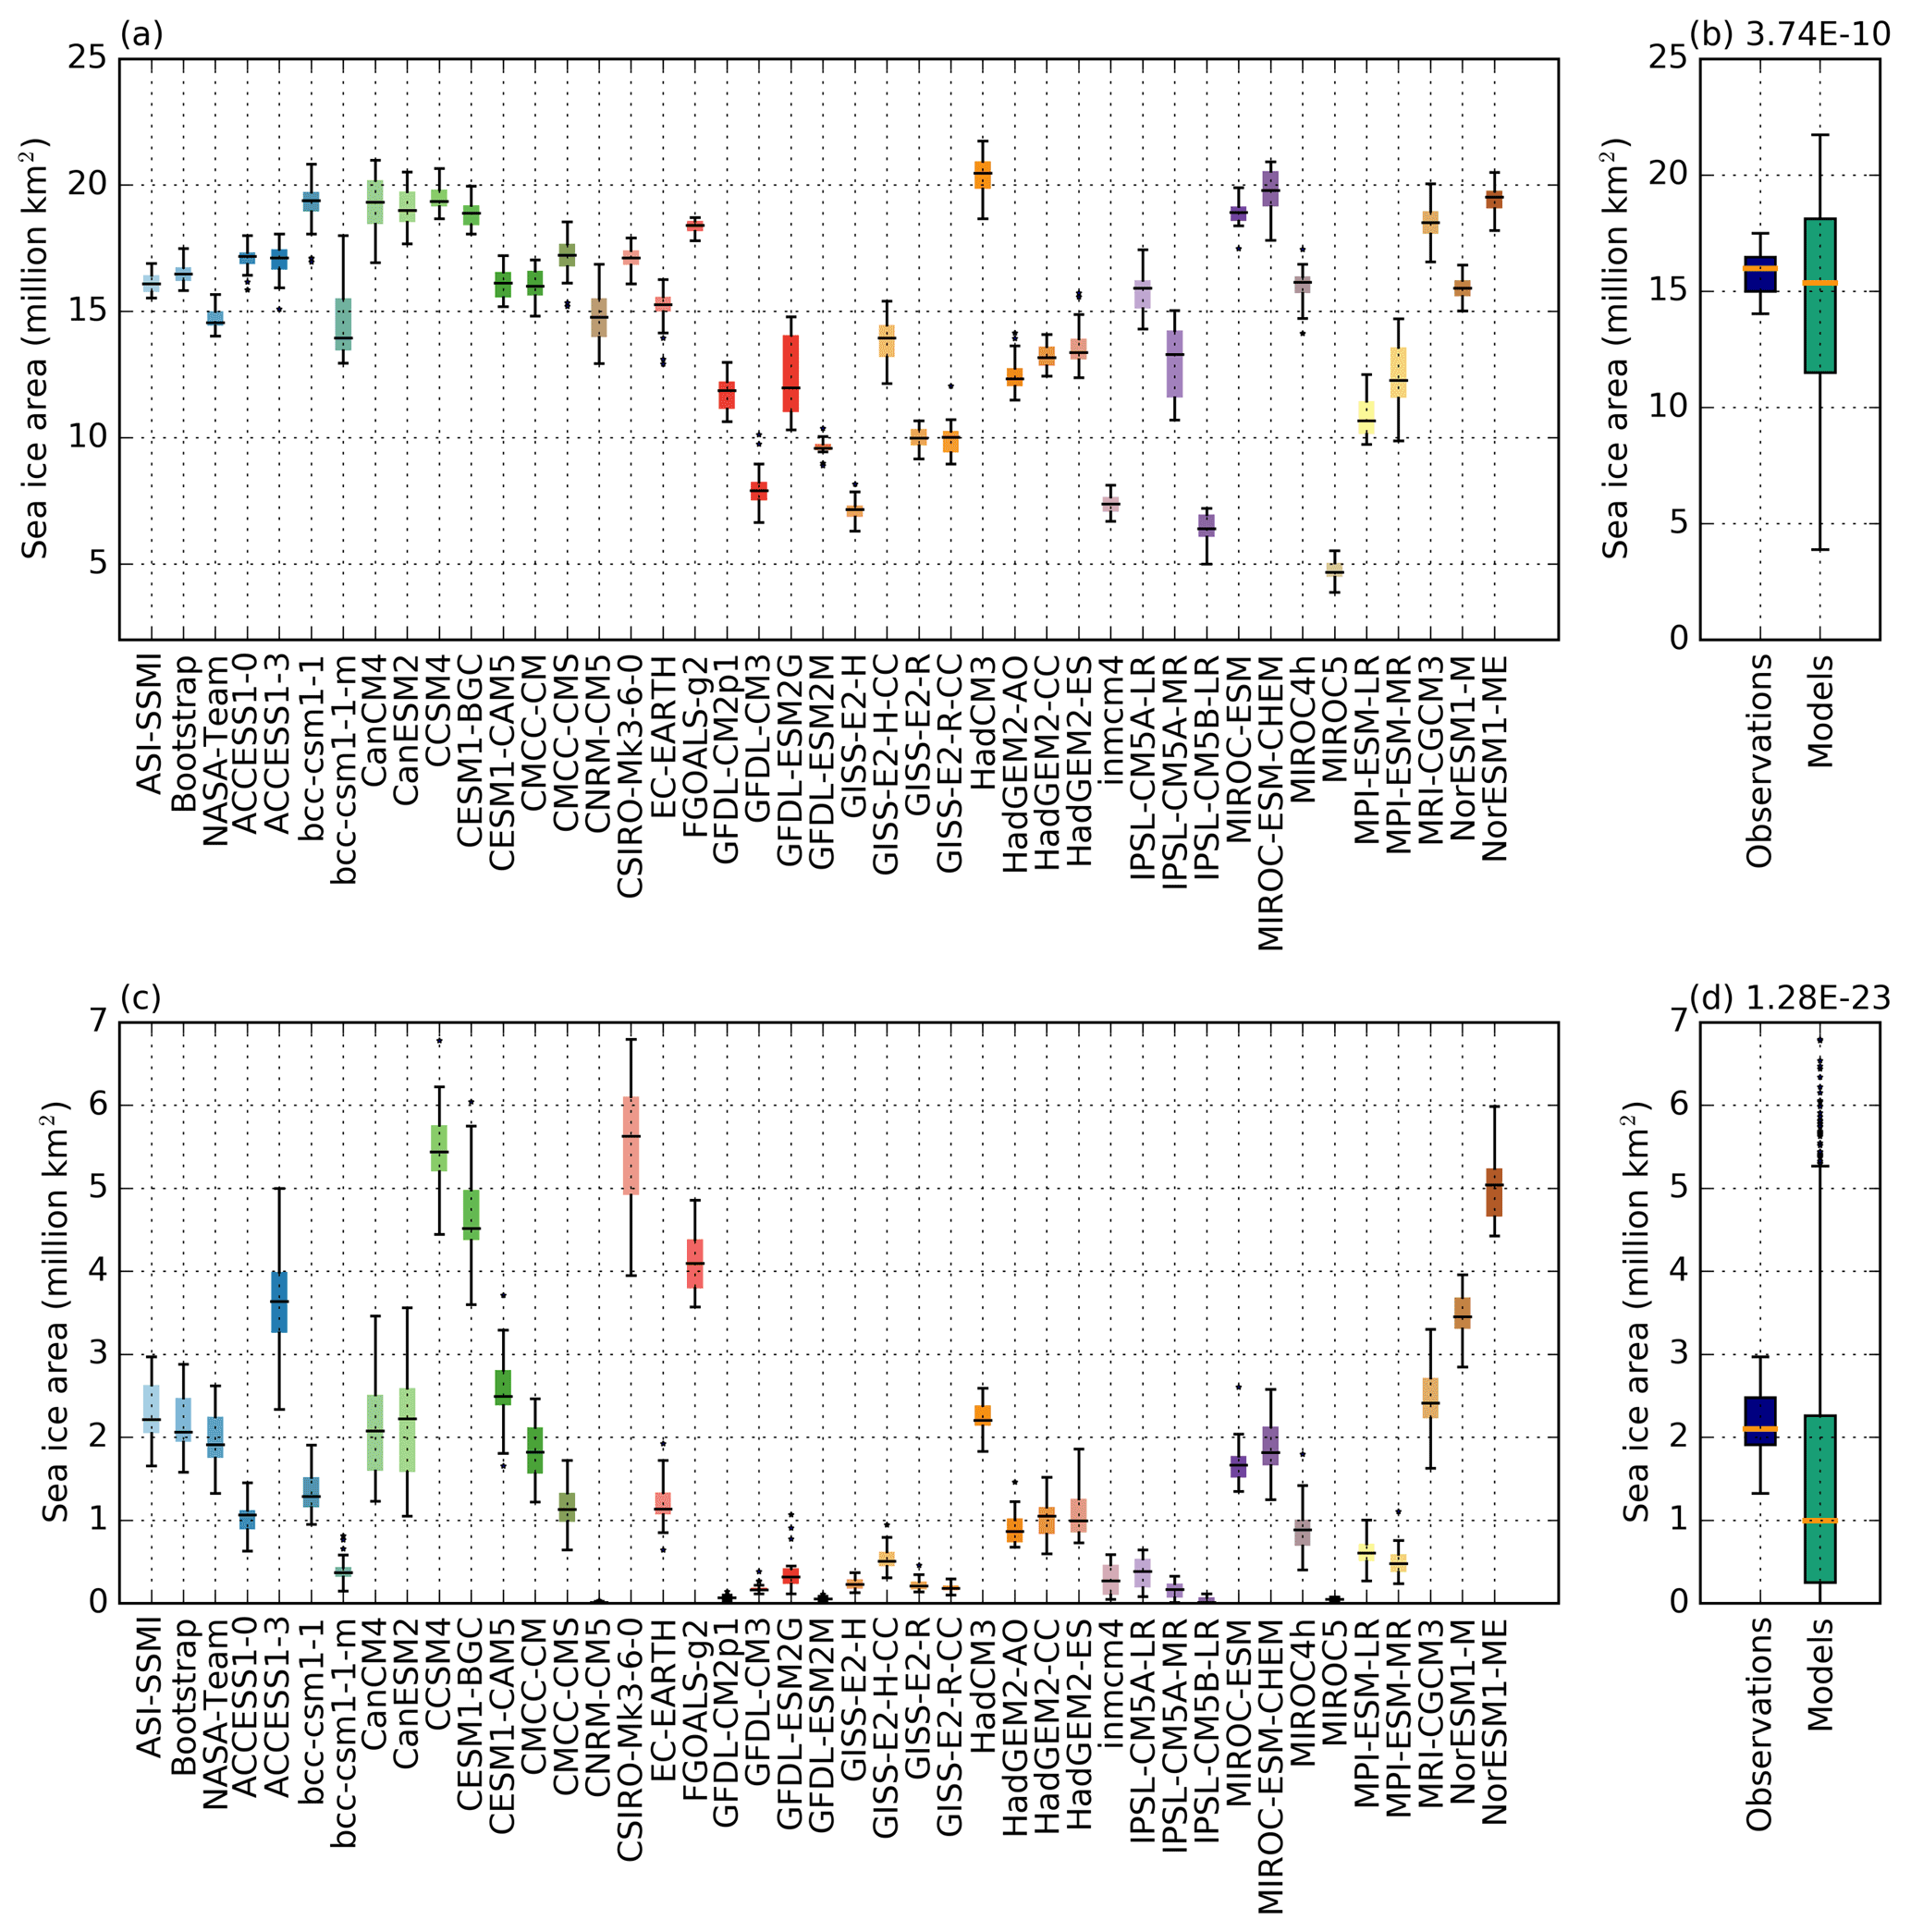 TC - Consistent biases in Antarctic sea ice concentration